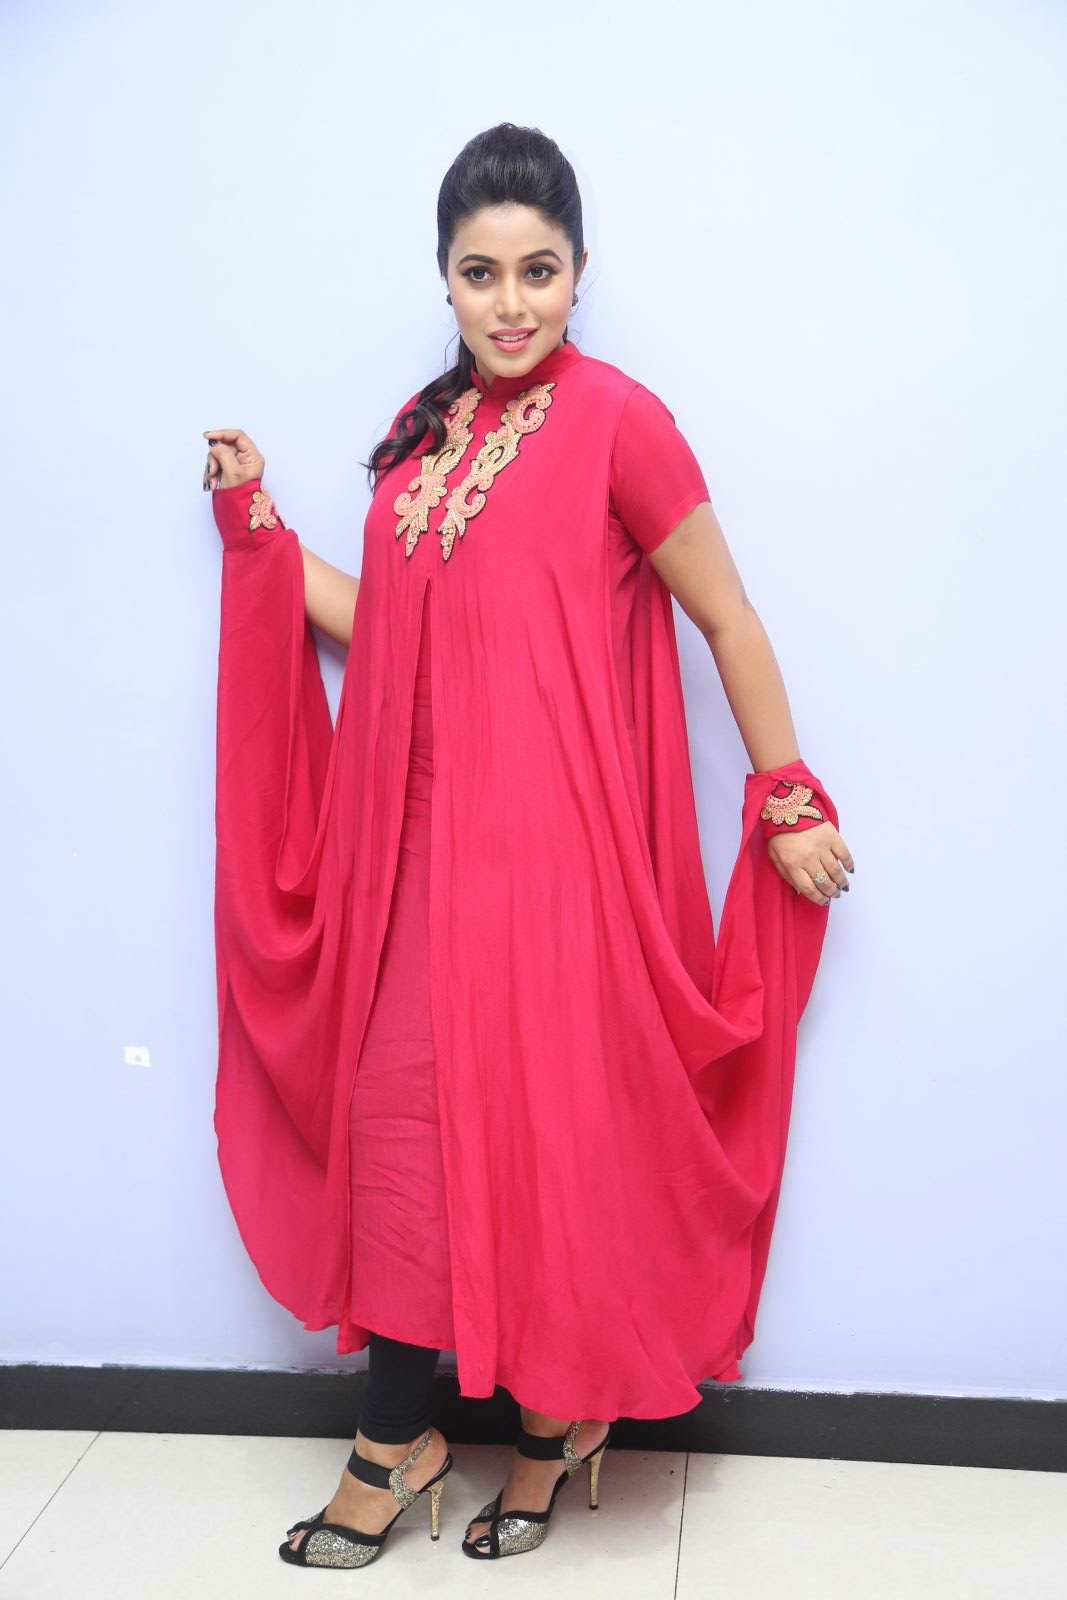 poorna new glamorous photos-HQ-Photo-15